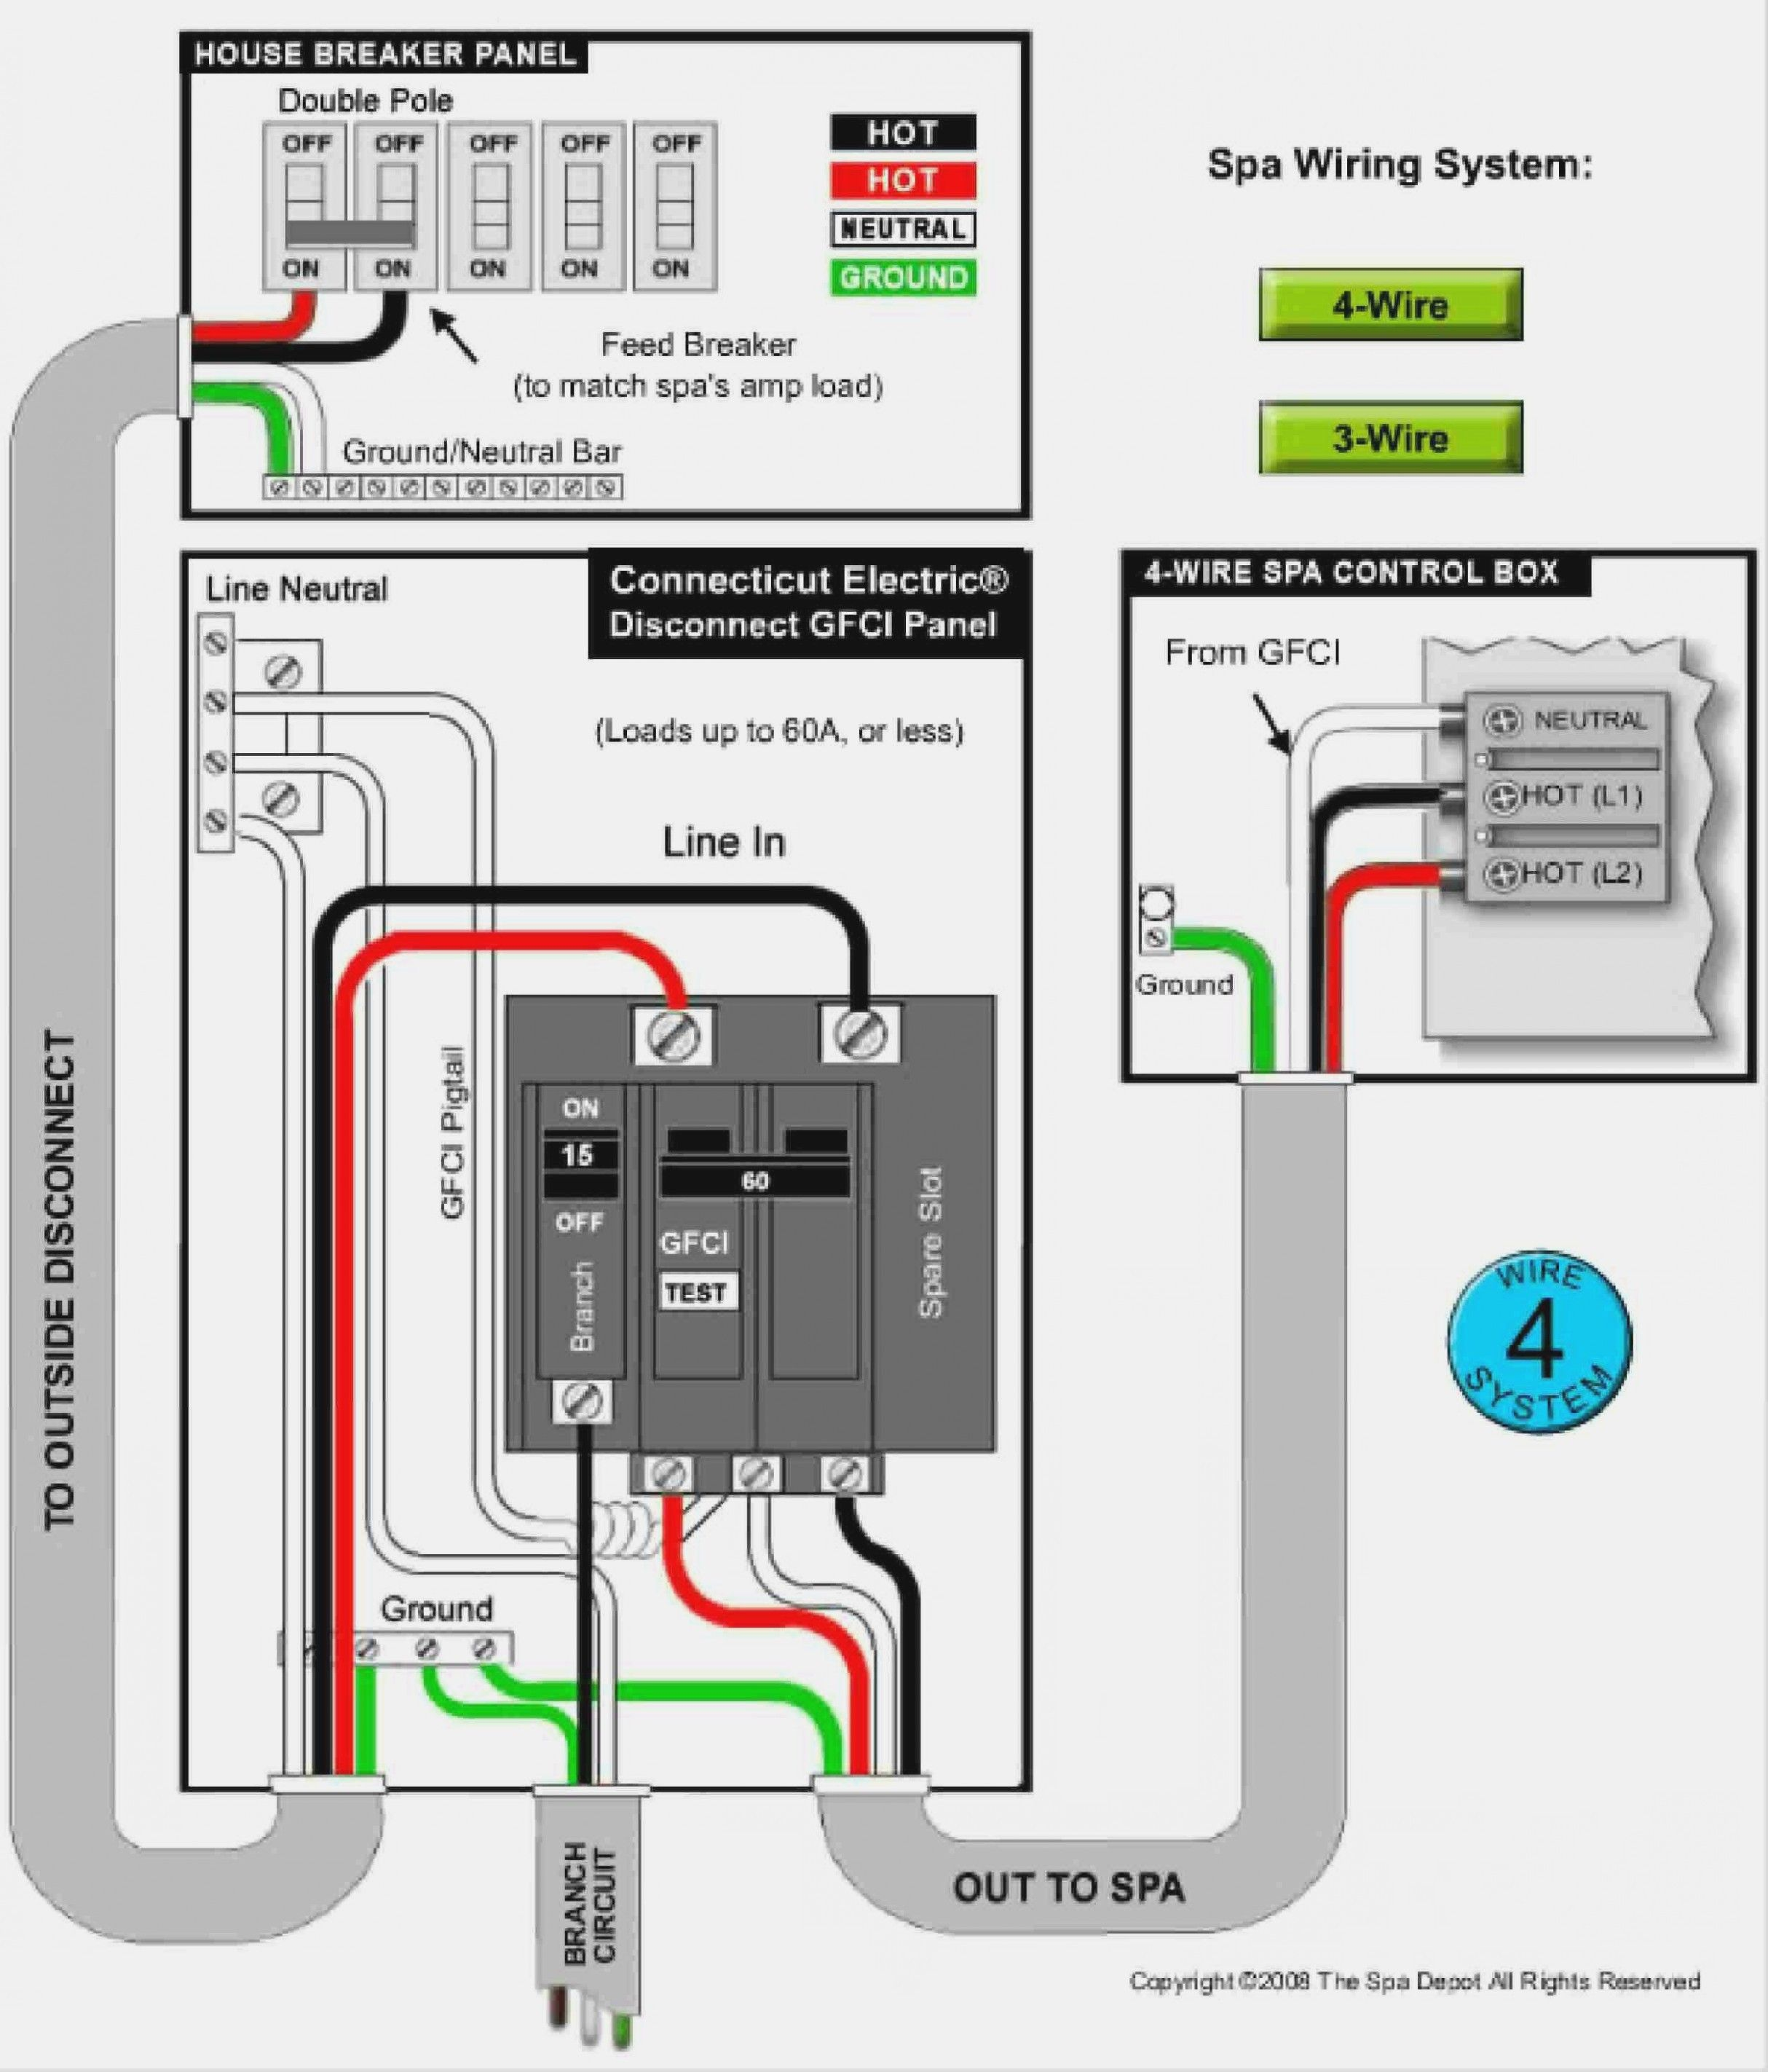 hot tub wiring schematic wiring diagram toolbox download diagram for hooking up a pool hot tub or spa [ 2428 x 2845 Pixel ]